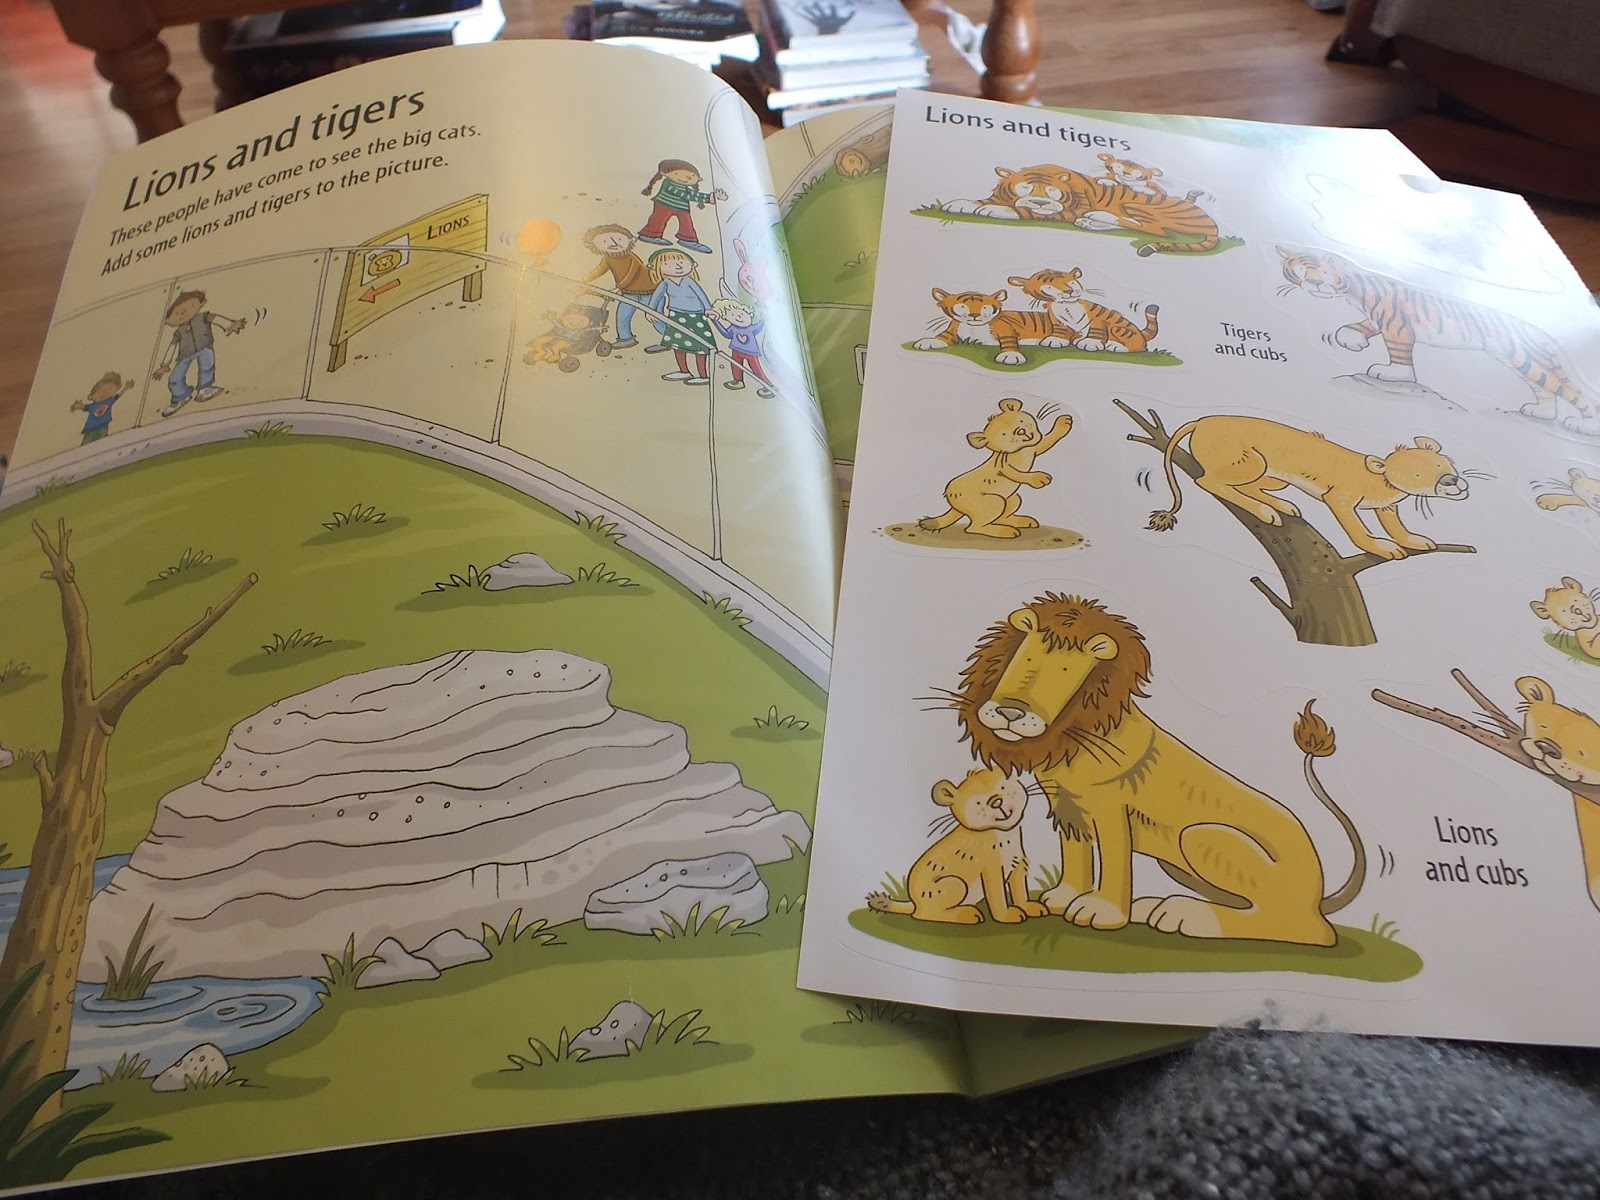 From a whisper to a roar october 2016 they also look nice enough to keep and flick through afterwards if youre looking for some quiet time activity books id definitely recommend it gumiabroncs Choice Image